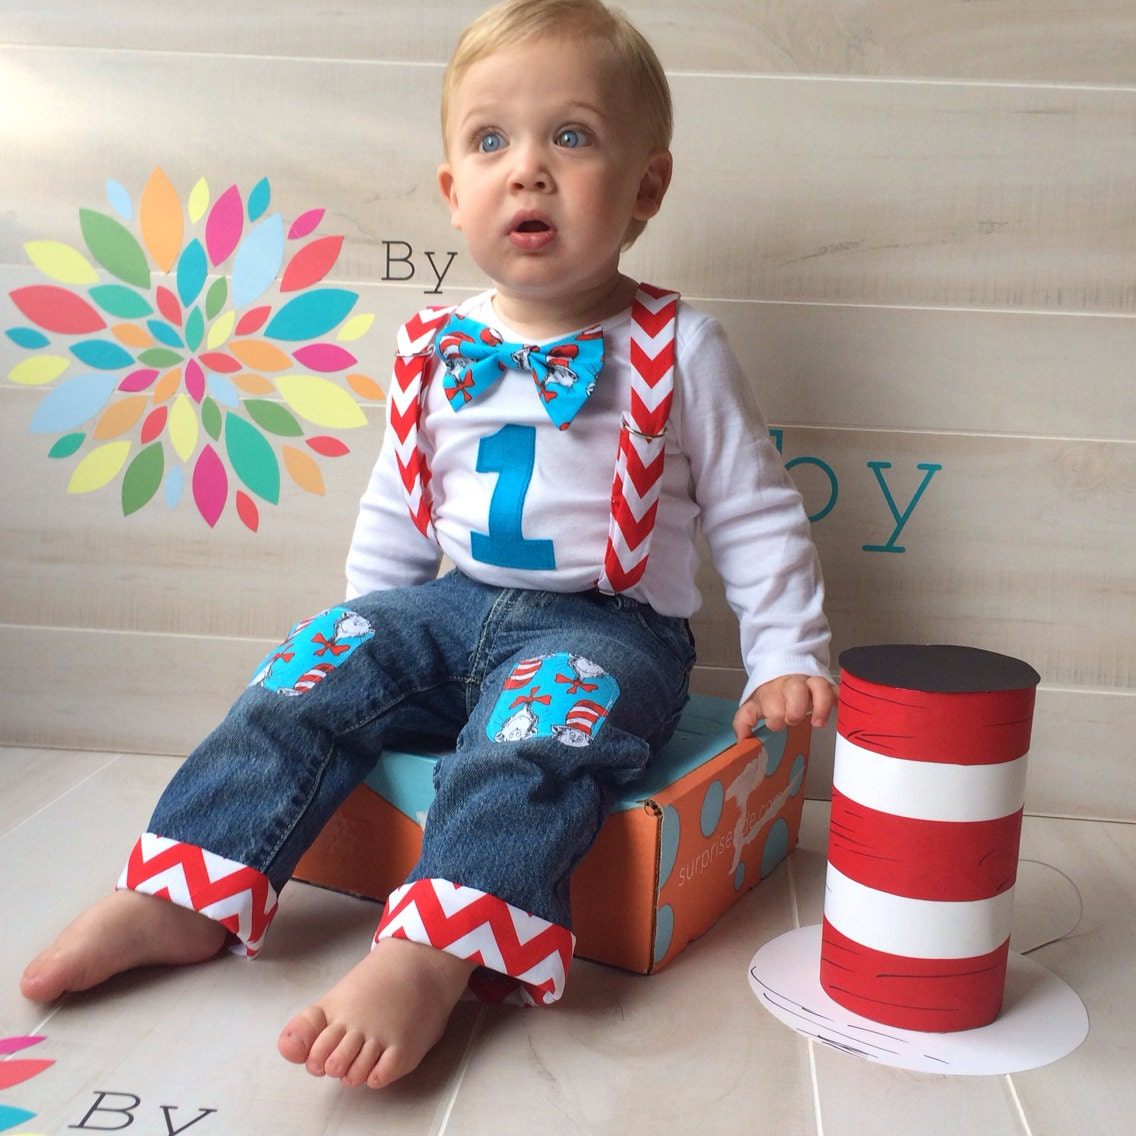 Birthday Party Outfit: Entire Dr. Seuss Baby Boy 1st Birthday Shirt & Knee Patch Jean